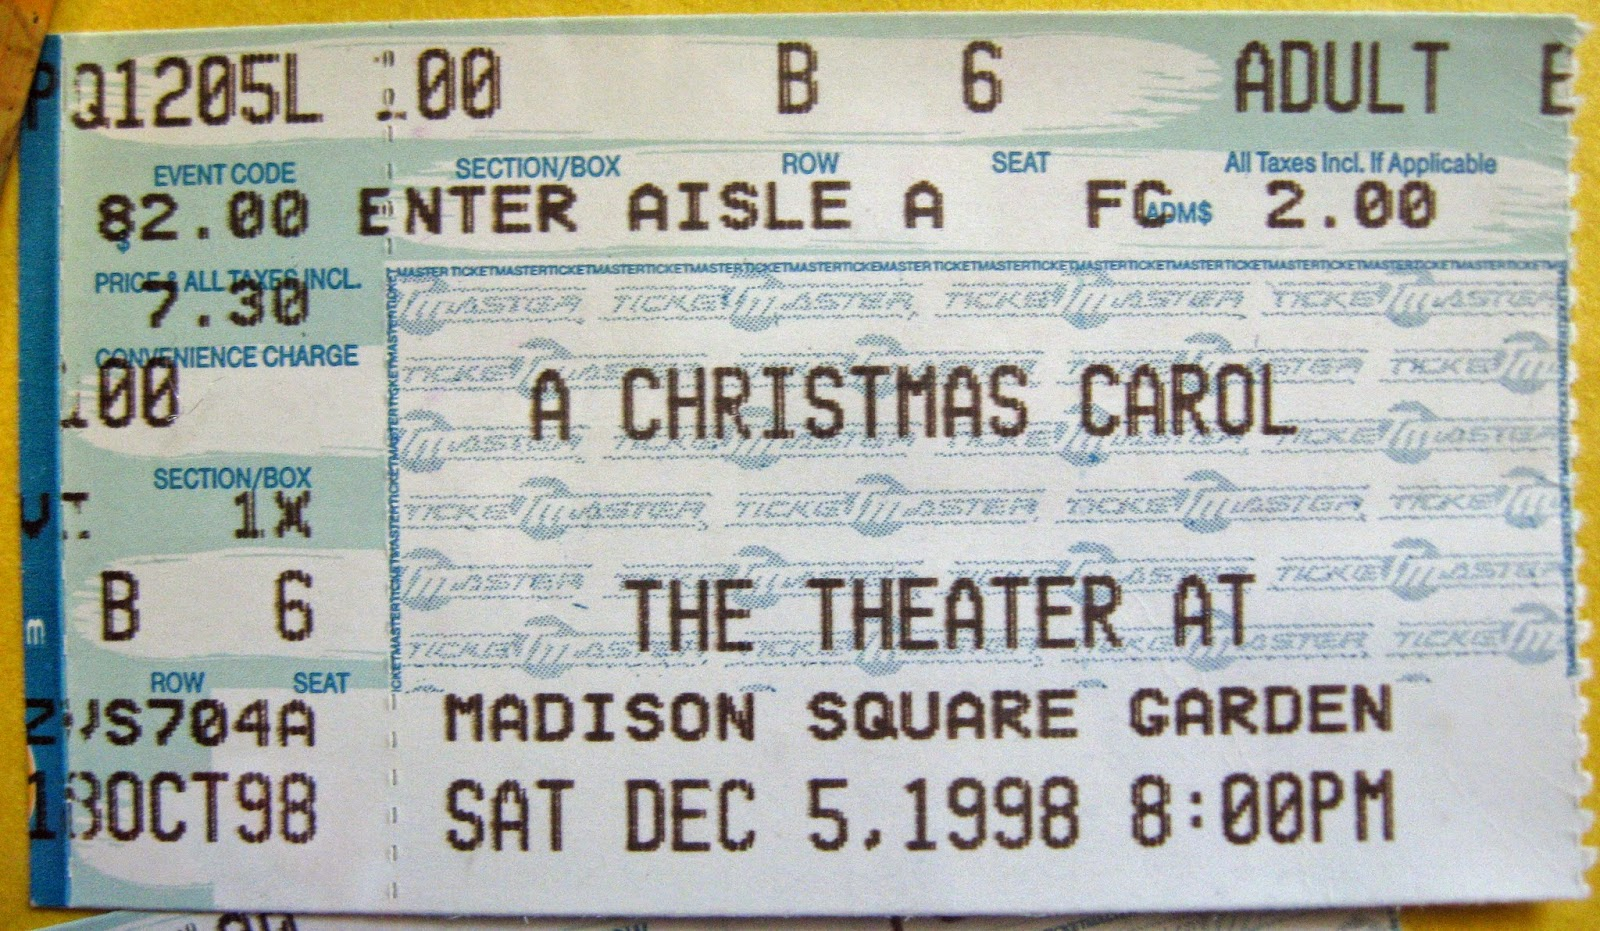 My ticket stub to see Roger Daltrey as Scrooge Dec 5, 1998 at MSG